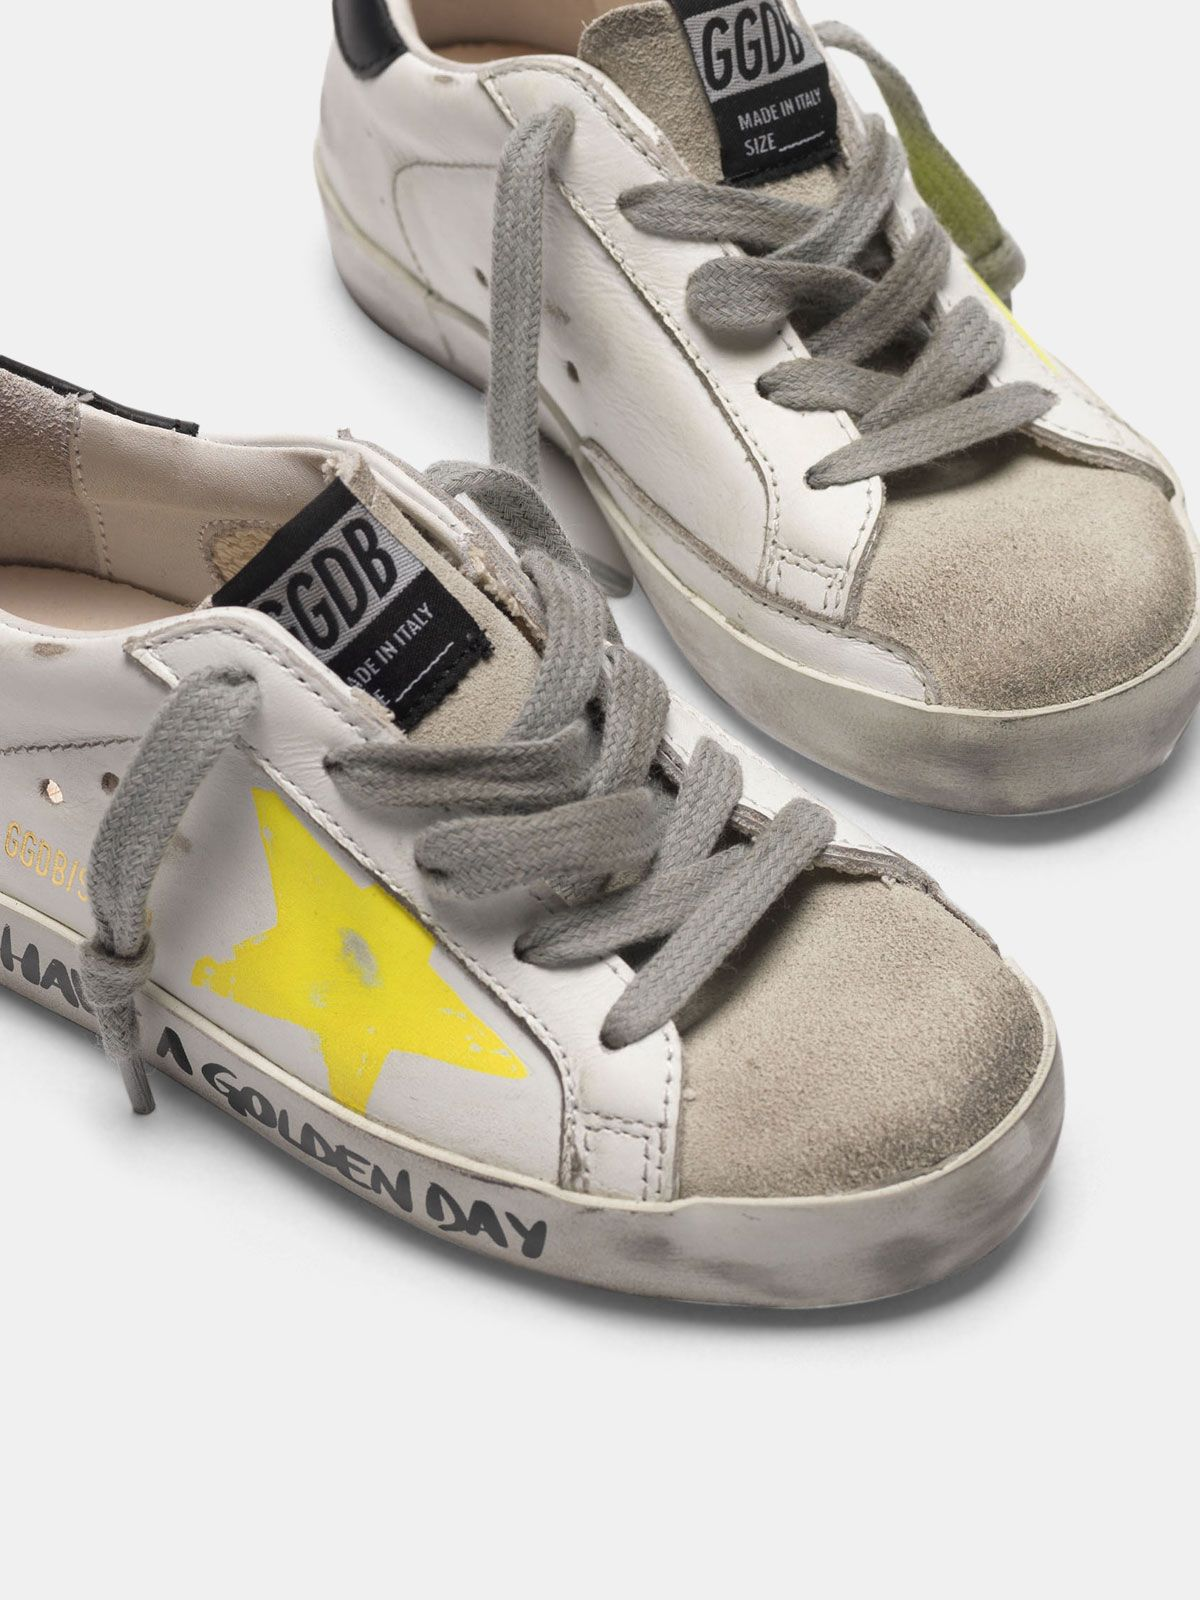 Golden Goose - Super-Star sneakers with painted star and lettering on the foxing in